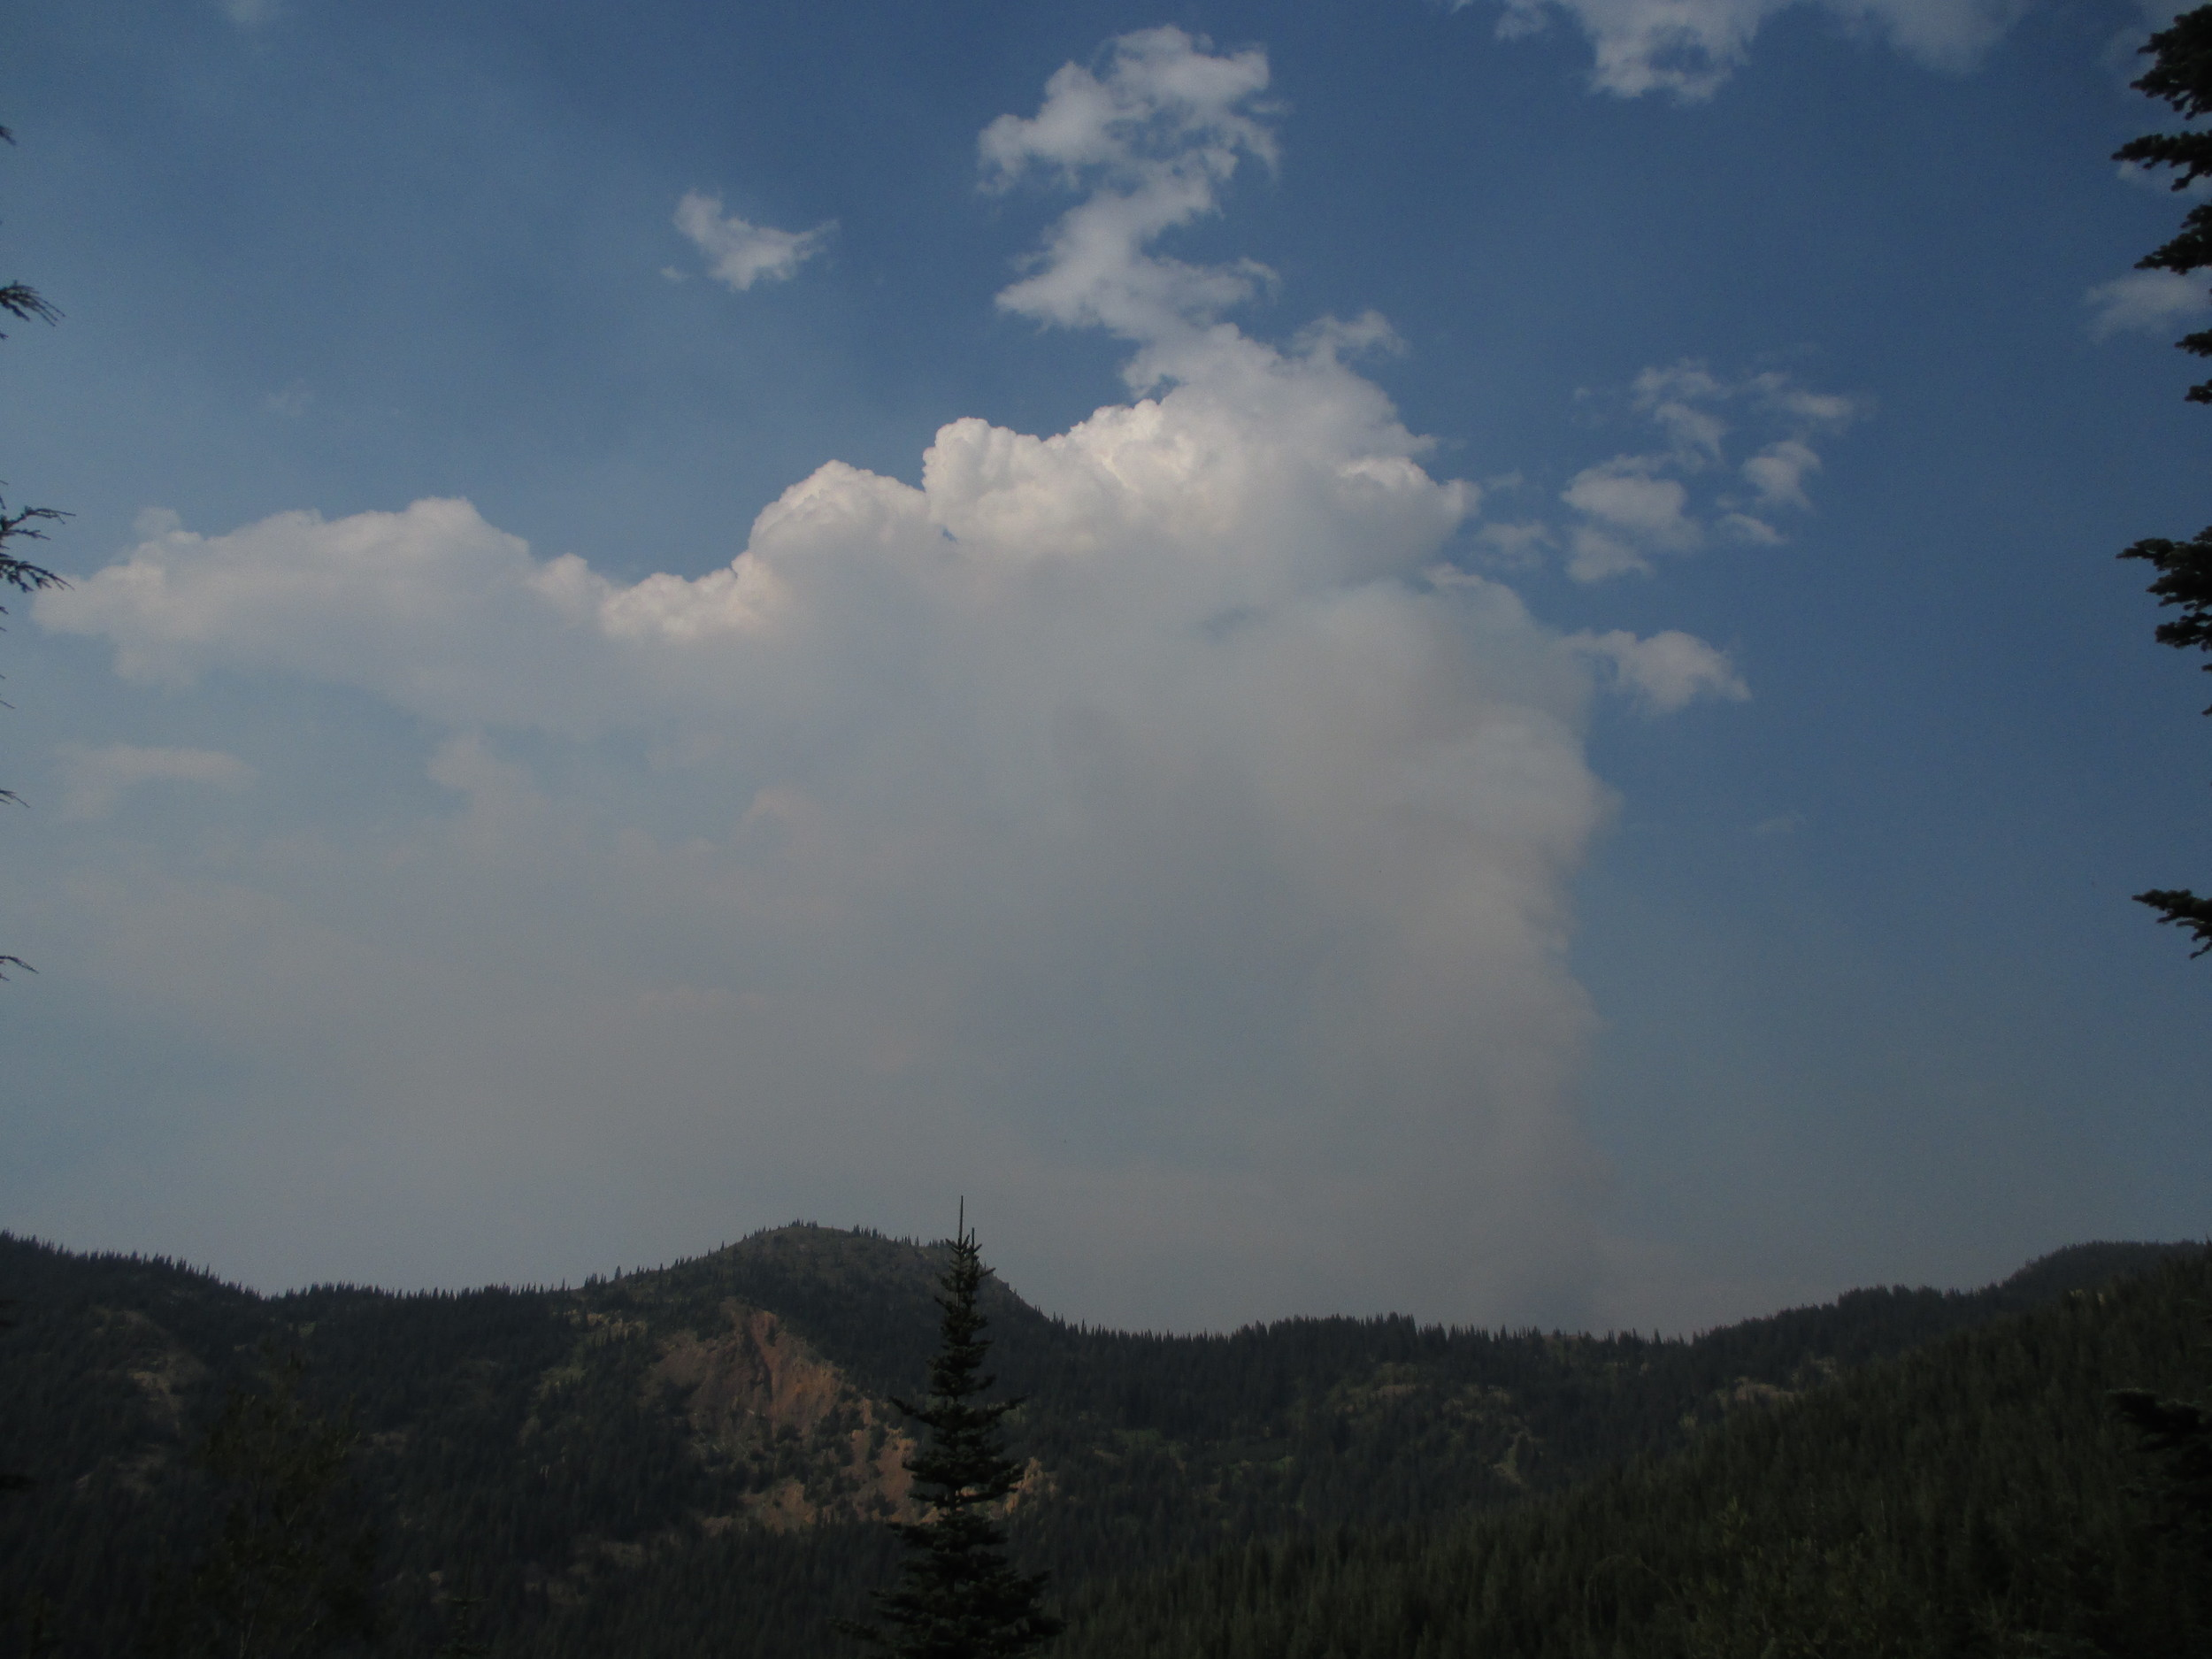 Pyrocumulus clouds--you can see the olumn of gray wildfire smoke in the center of the clouds.  Photo by MM Ruth